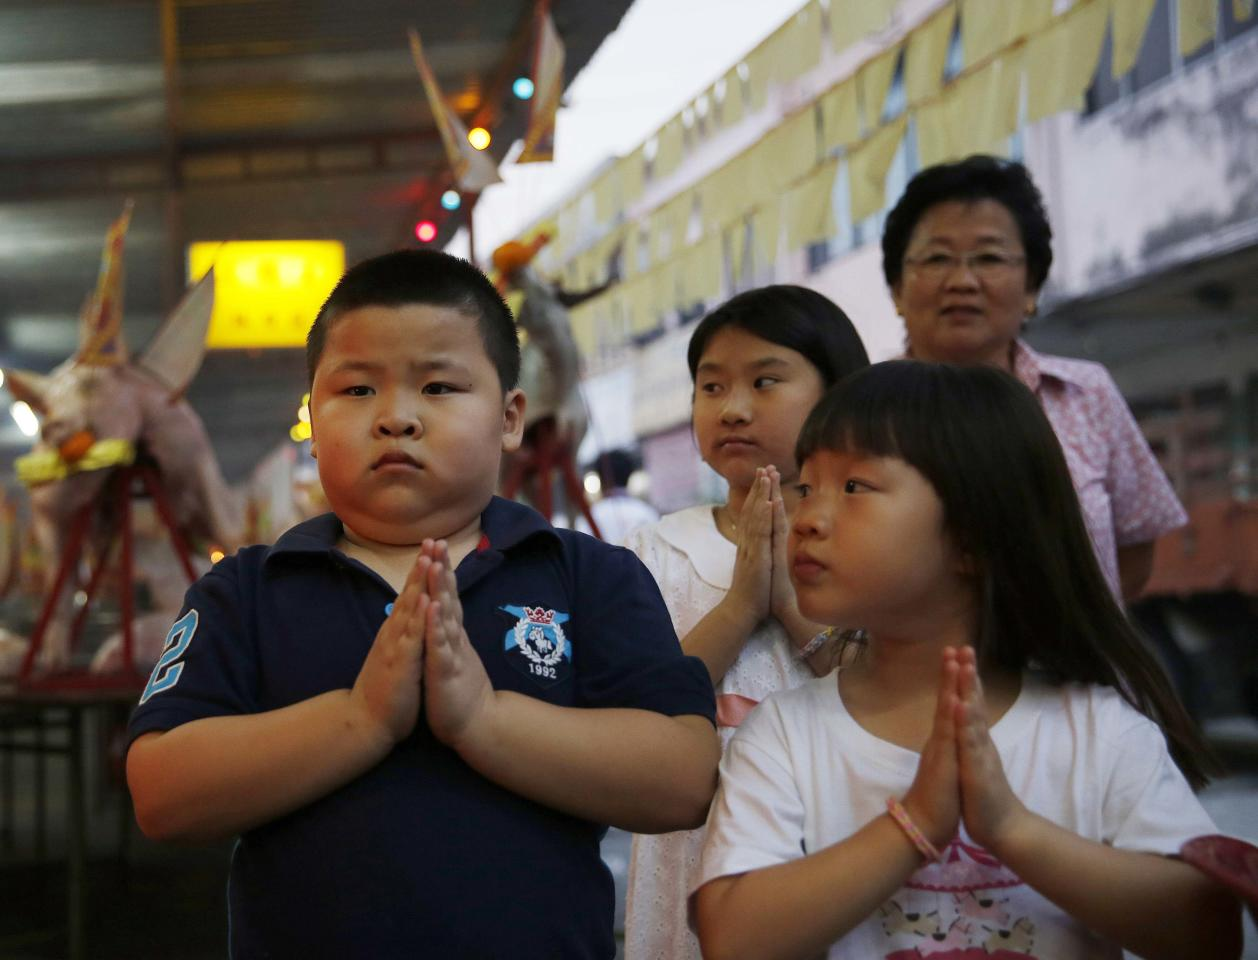 Children pray during the Hungry Ghost festival in Kuala Lumpur August 3, 2014. According to Taoist and Buddhist beliefs, the seventh month of the Chinese Lunar calendar, known as the Hungry Ghost Festival is when the Gates of Hell open to let out spirits who wander the land of the living looking for food. Food offerings are made while paper money and joss sticks are burnt to keep the spirits of dead ancestors happy and to bring good luck. REUTERS/Olivia Harris (MALAYSIA - Tags: SOCIETY RELIGION)